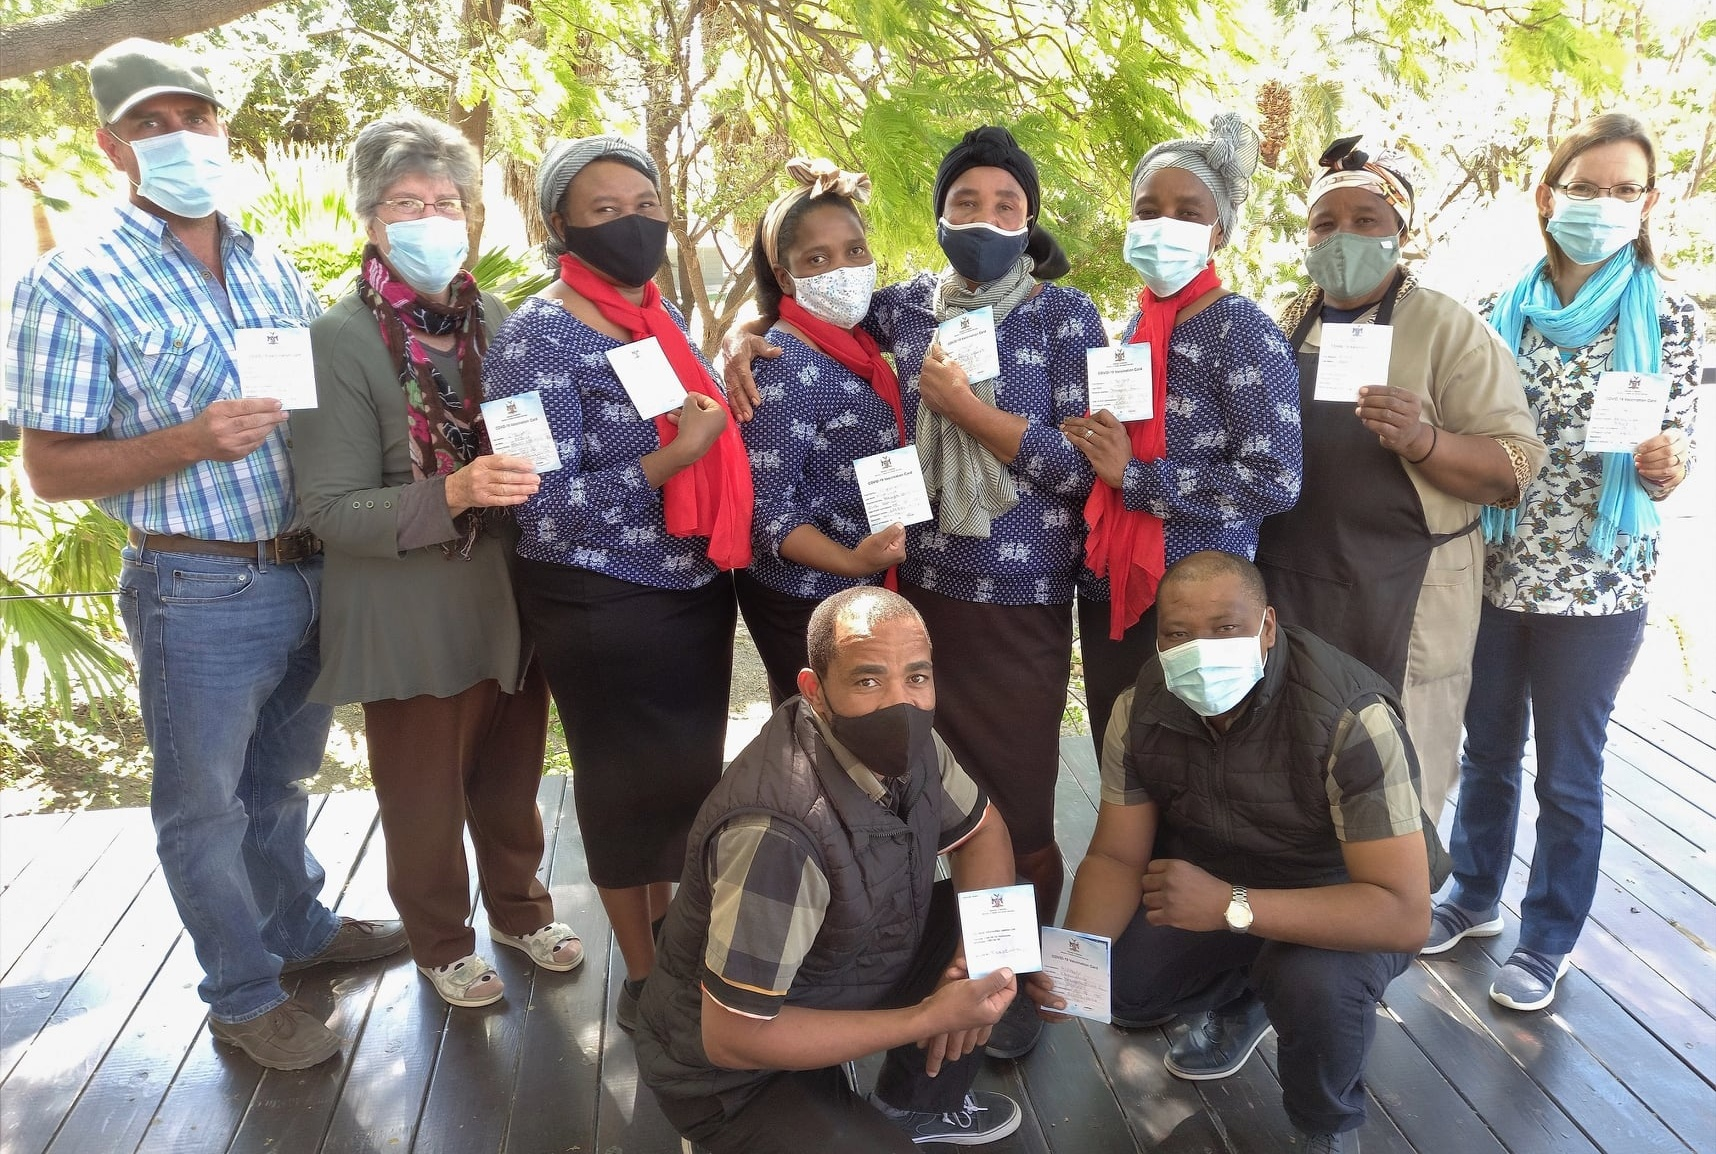 The Vreugde Guest Farm team have had their Covid-19 vaccinations